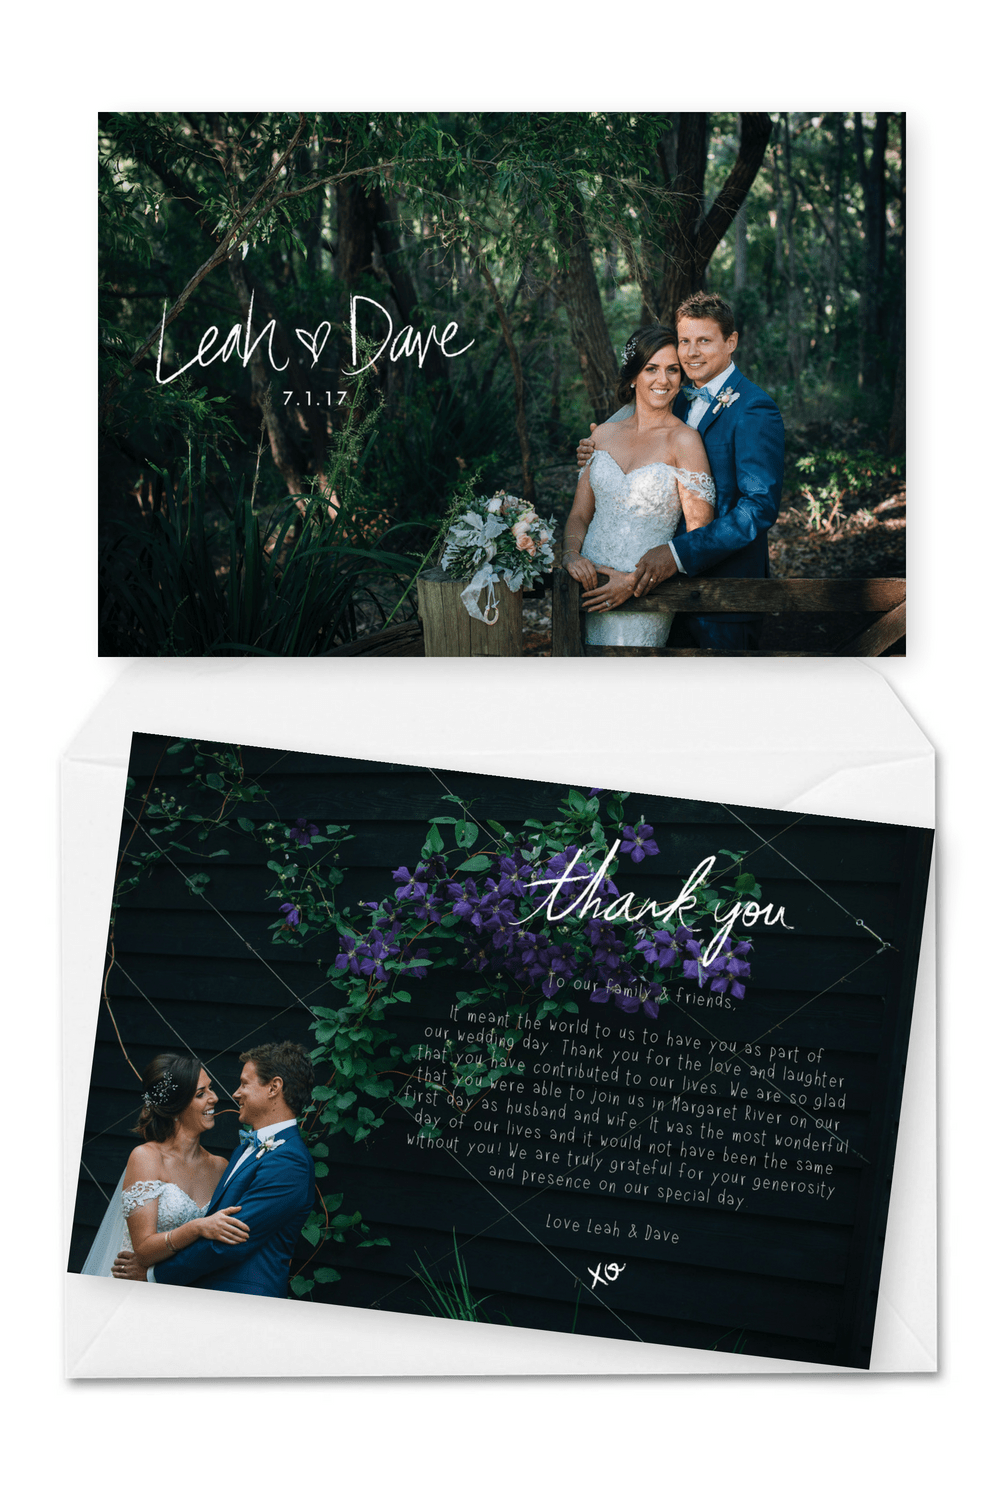 Wedding Thank You Card Wording Examples How To Write A Simple Thank You Message